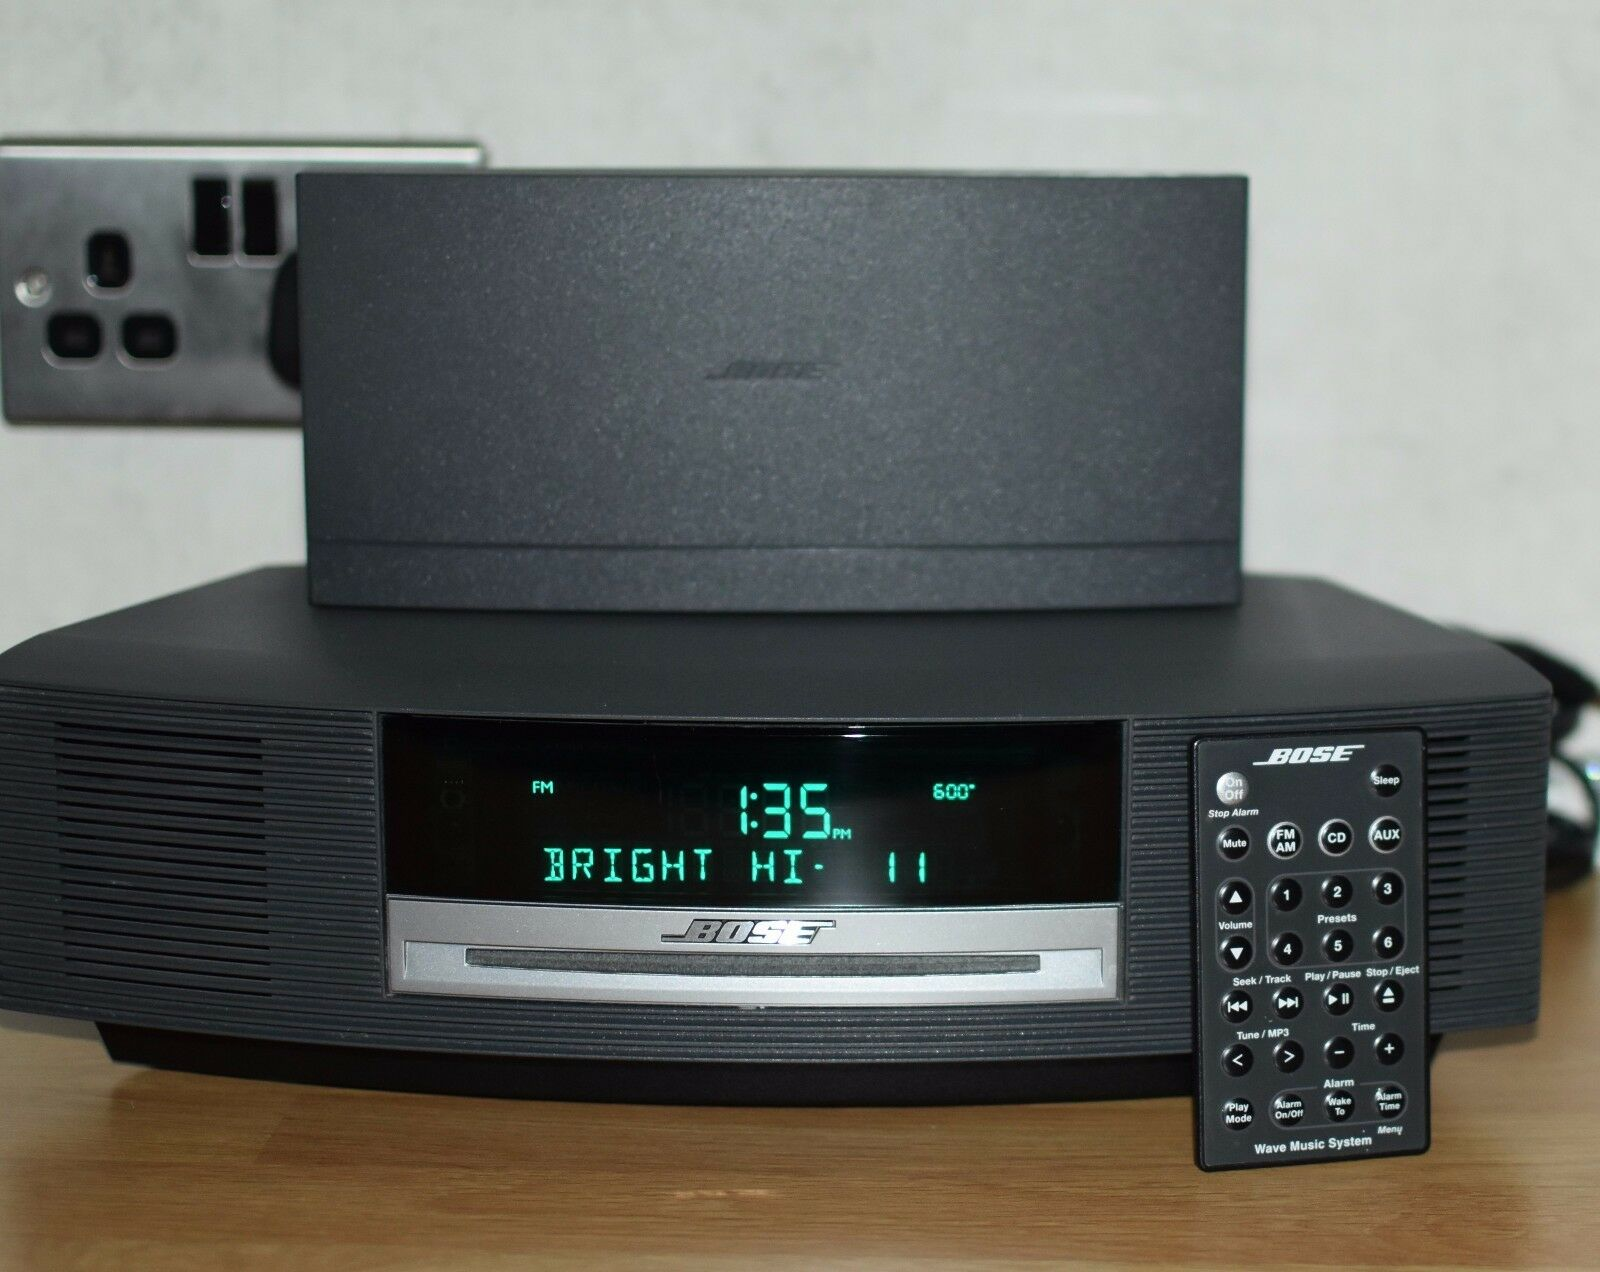 bose wave music system model awrcc5 cd player radio alarm. Black Bedroom Furniture Sets. Home Design Ideas